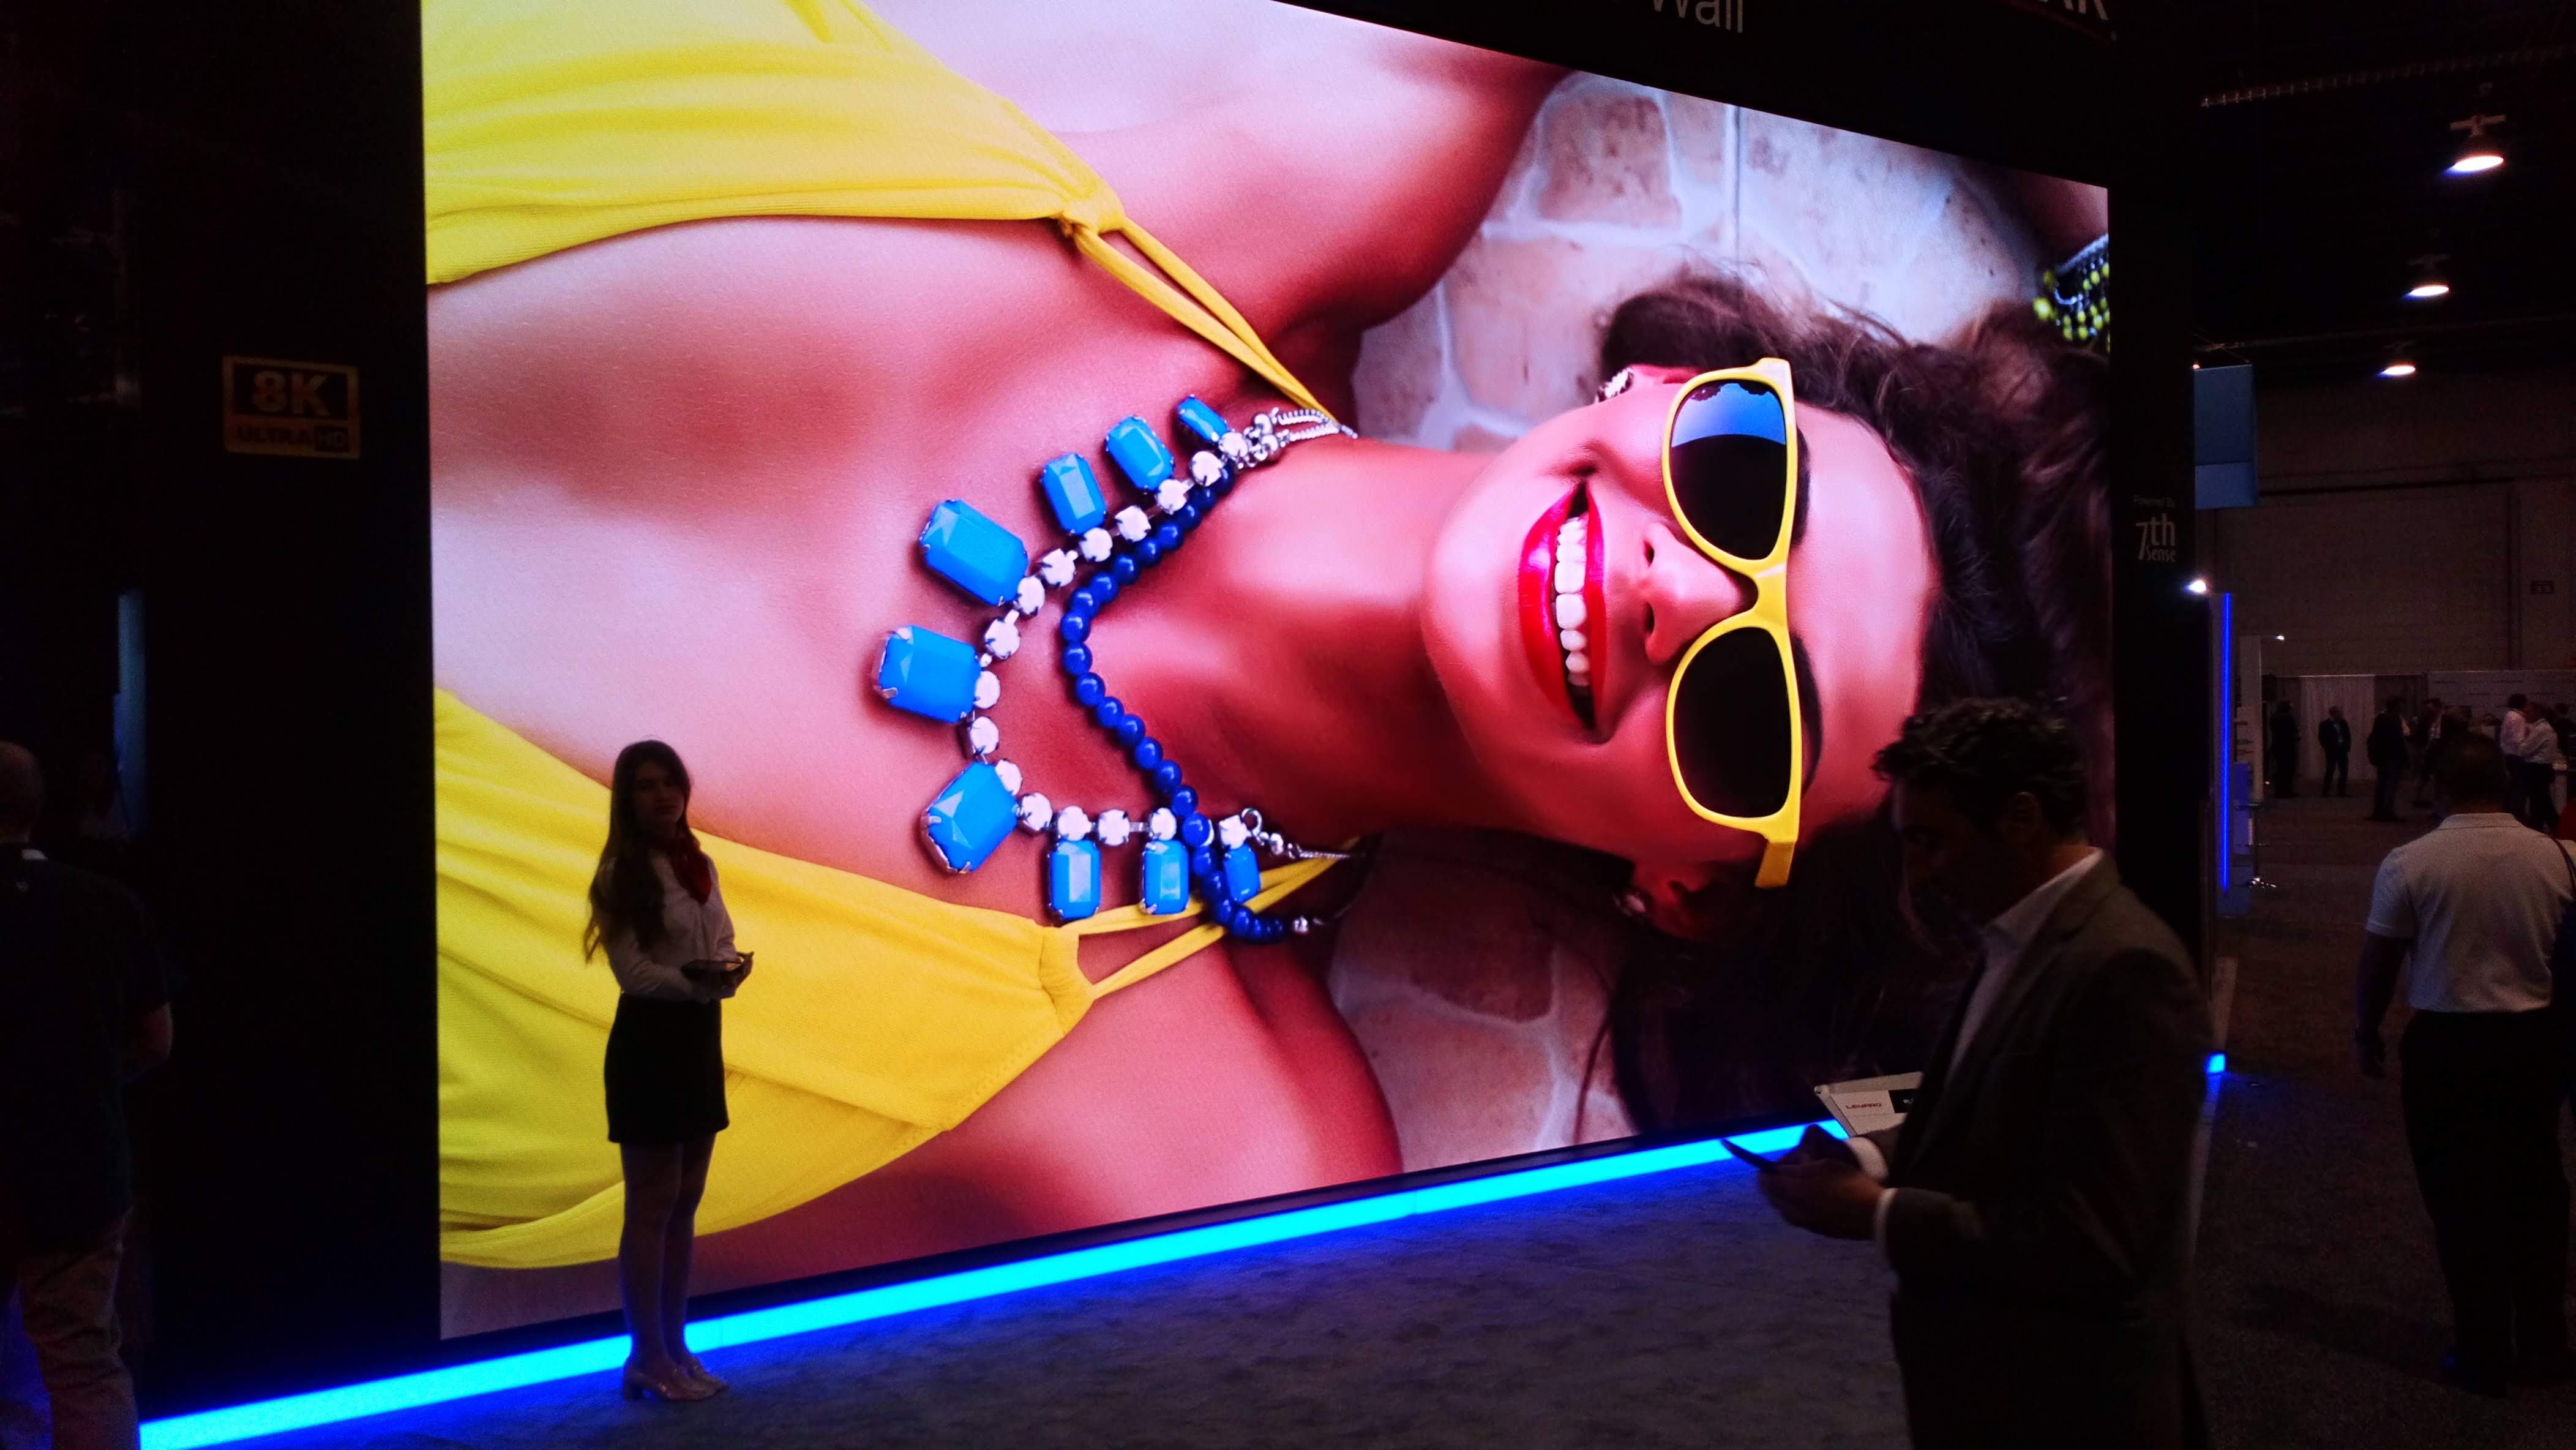 LED video walls. Amazing technology, not all the same 4